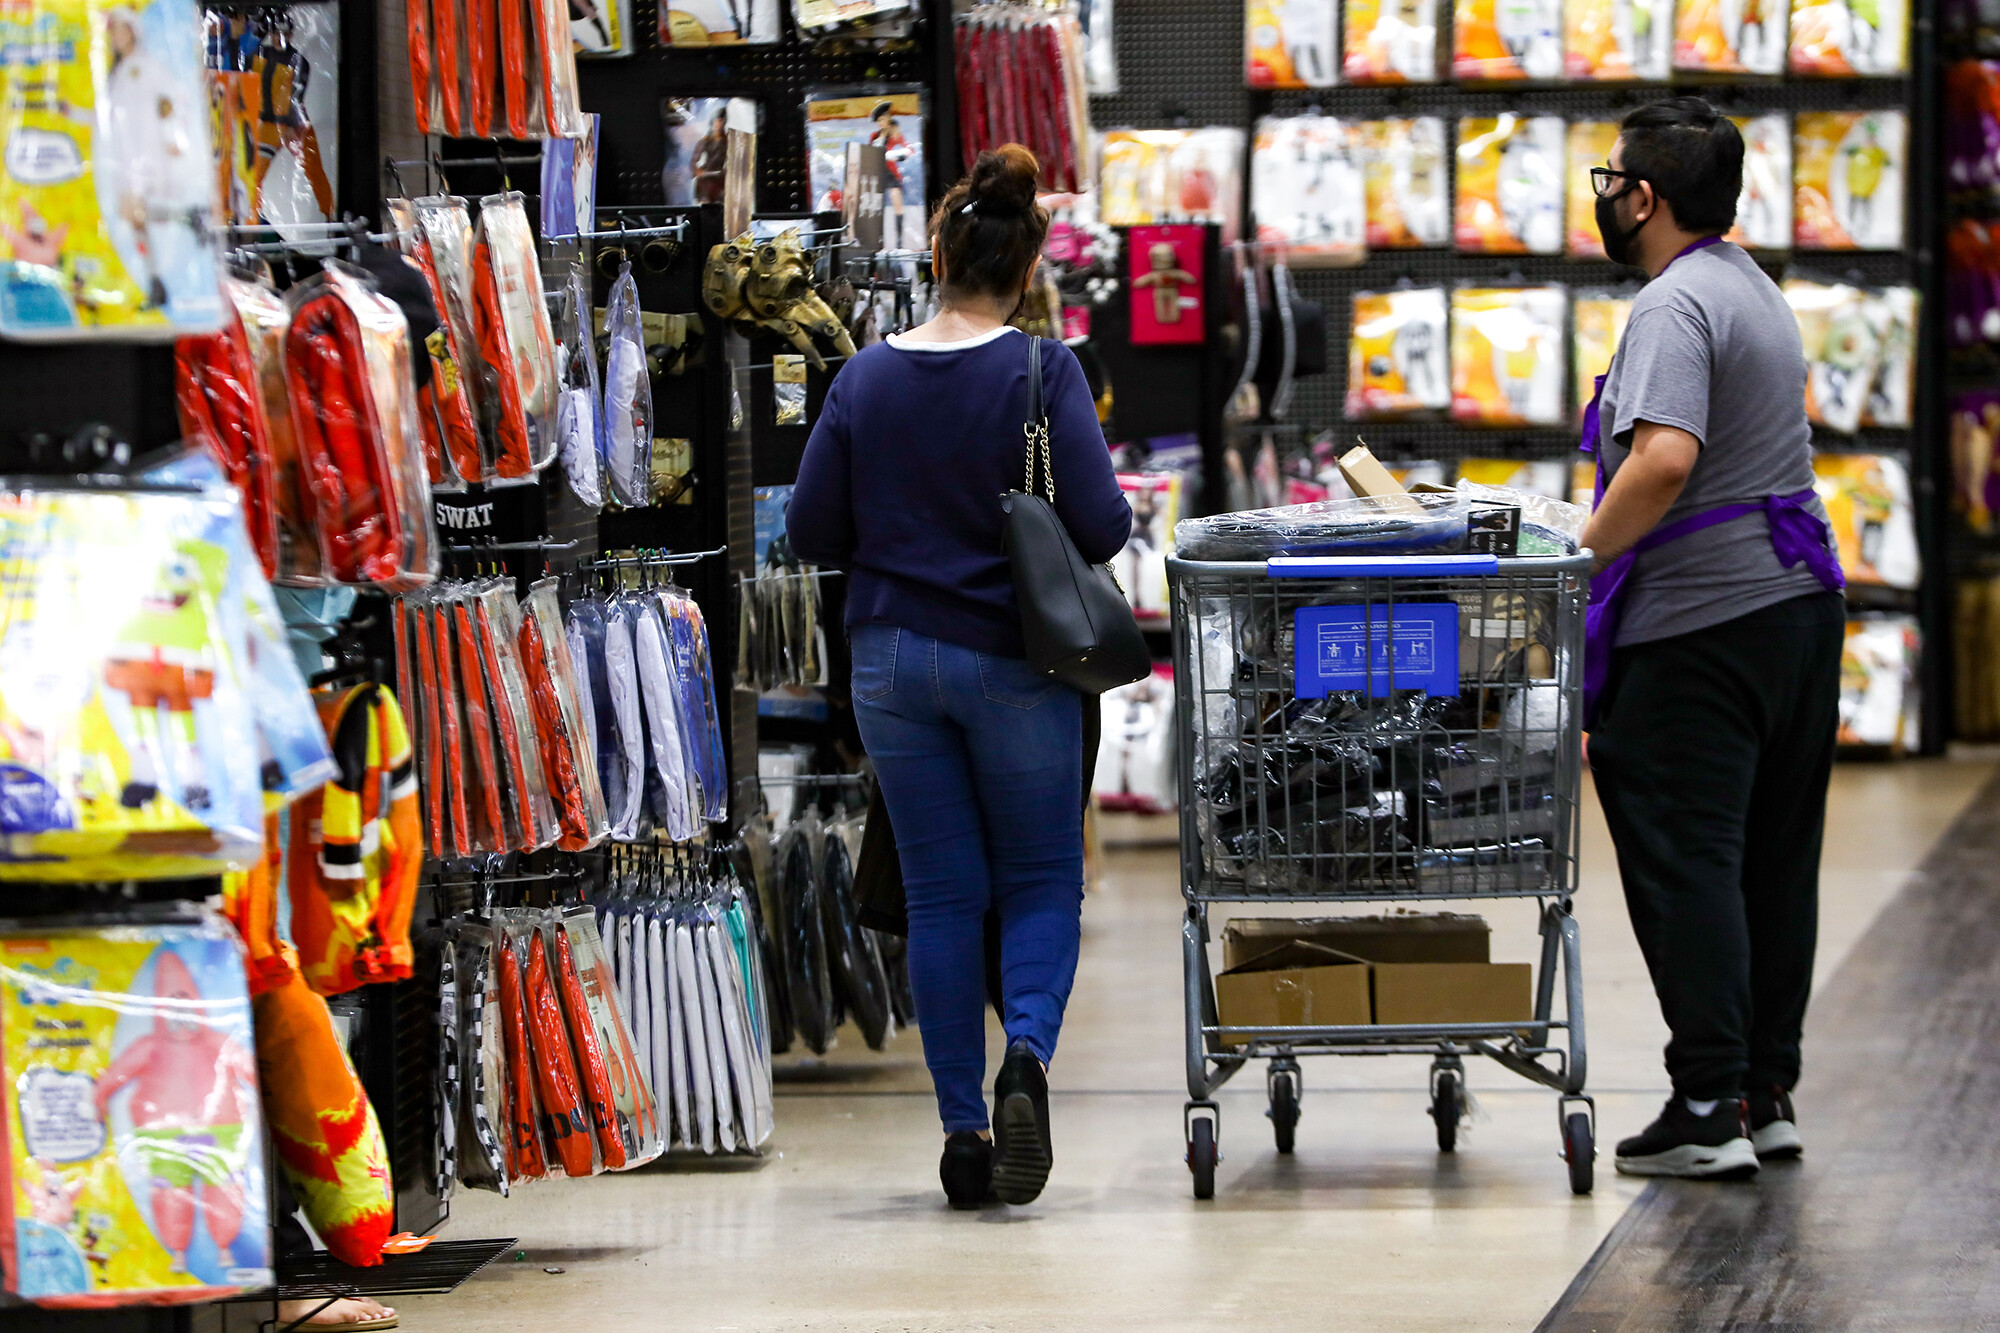 Shoppers are still spending despite rising prices and supply chain woes